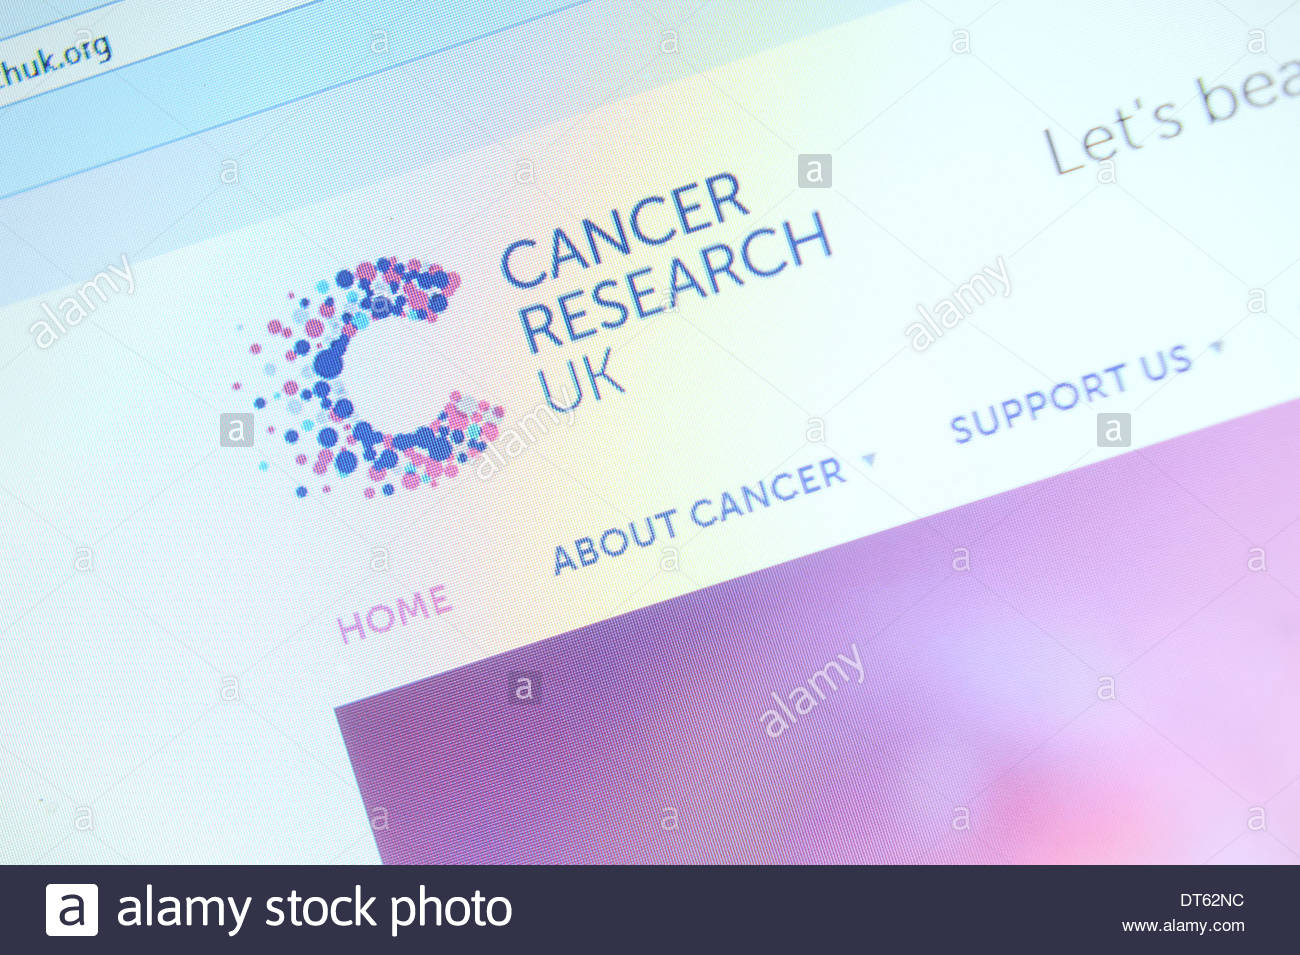 Cancer research Website - Stock Image